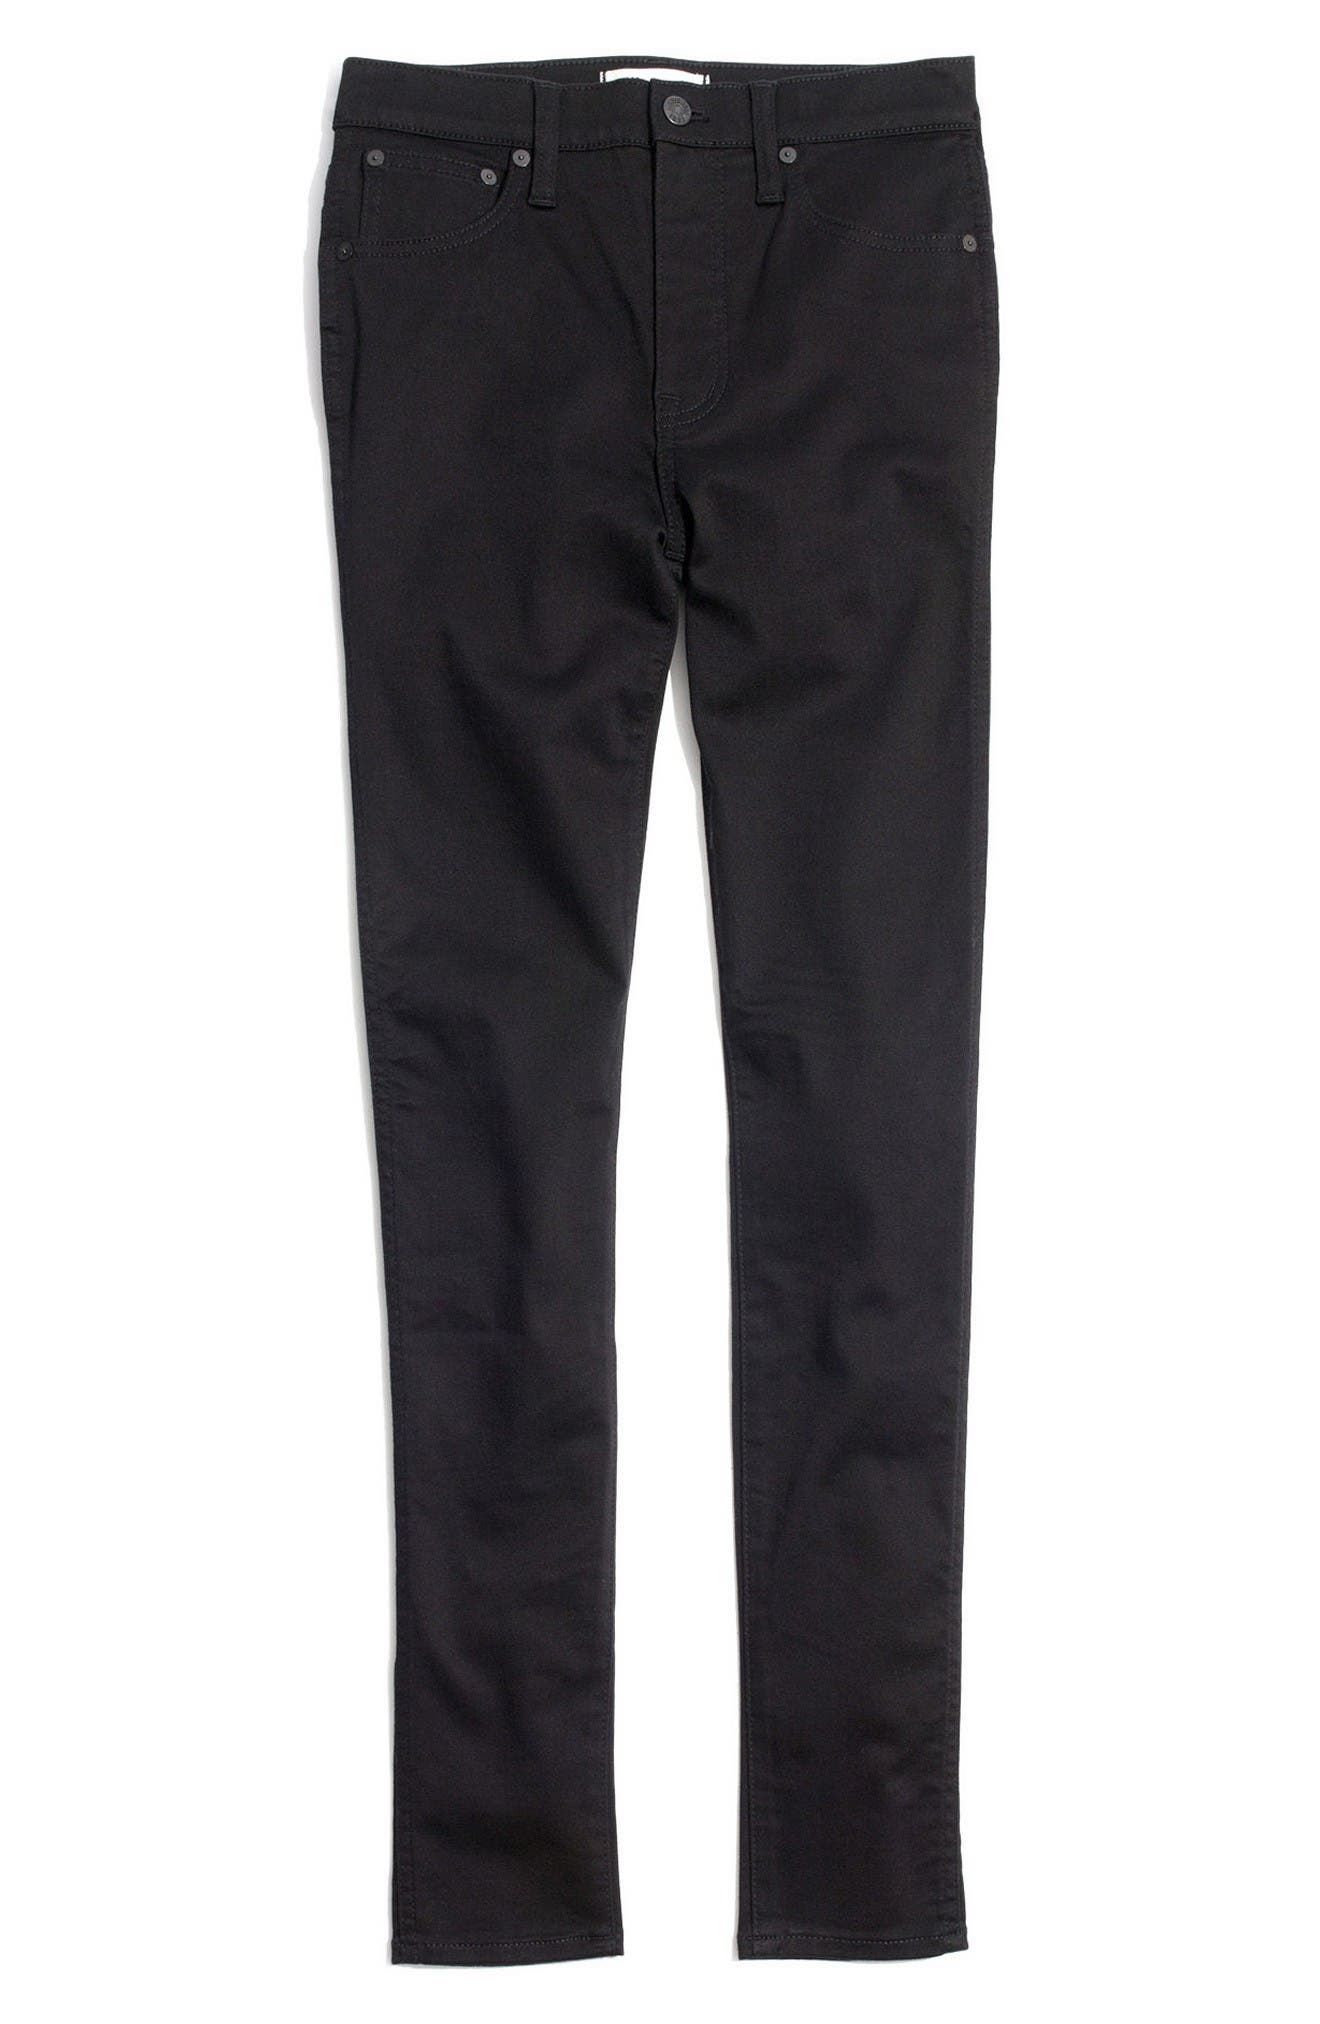 10-Inch High-Rise Skinny Jeans,                             Alternate thumbnail 4, color,                             Carbondale